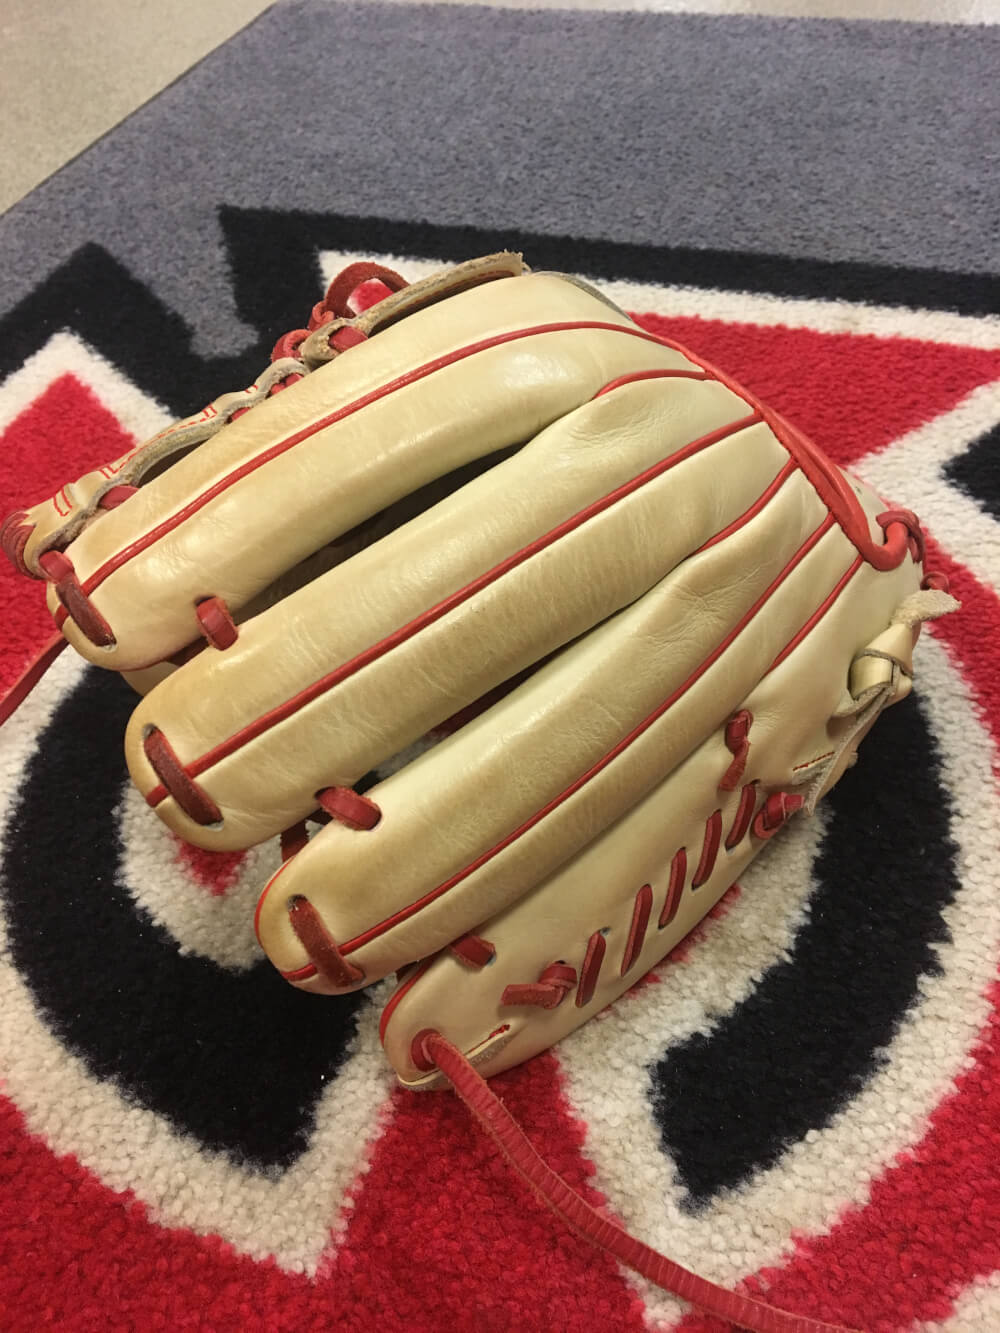 What Pros Wear 365 Day Performance Review 44 Pro Custom Glove What Pros Wear